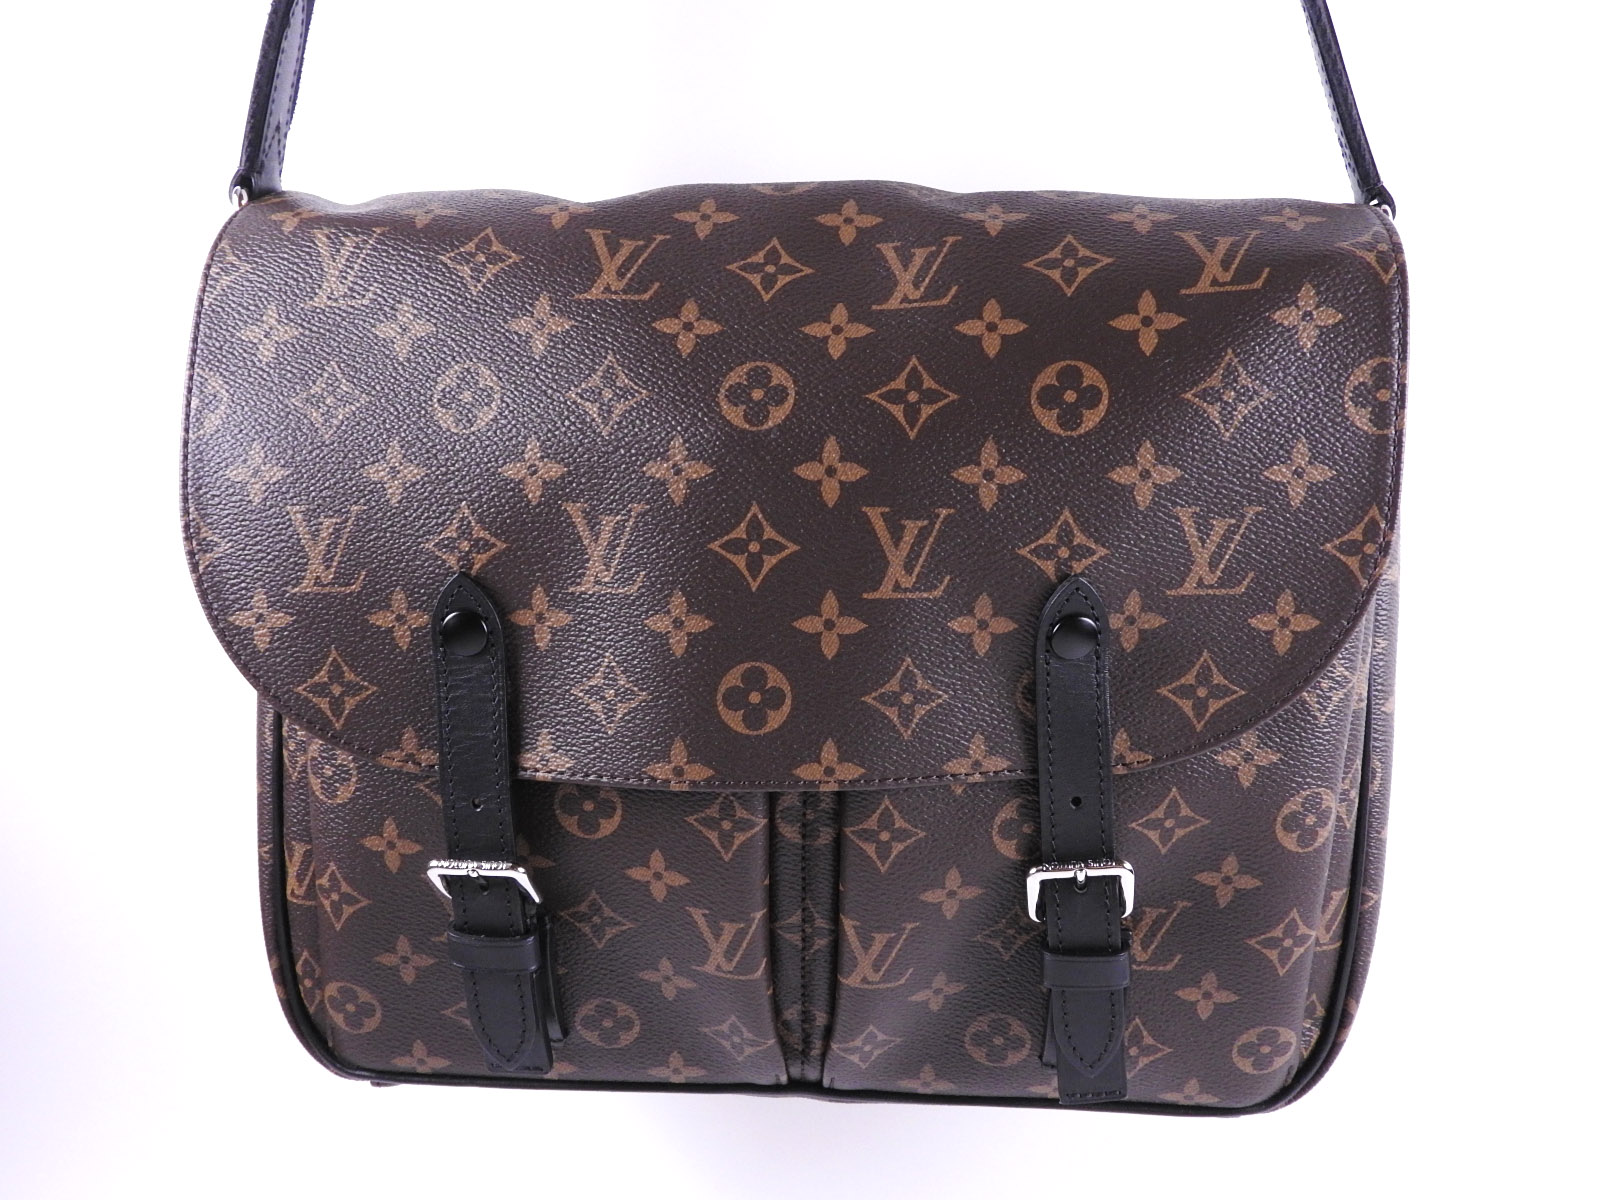 aff9545576d8 Auth LOUIS VUITTON Christopher Messenger Shoulder Bag Monogram Macassar  M41643 A-7938